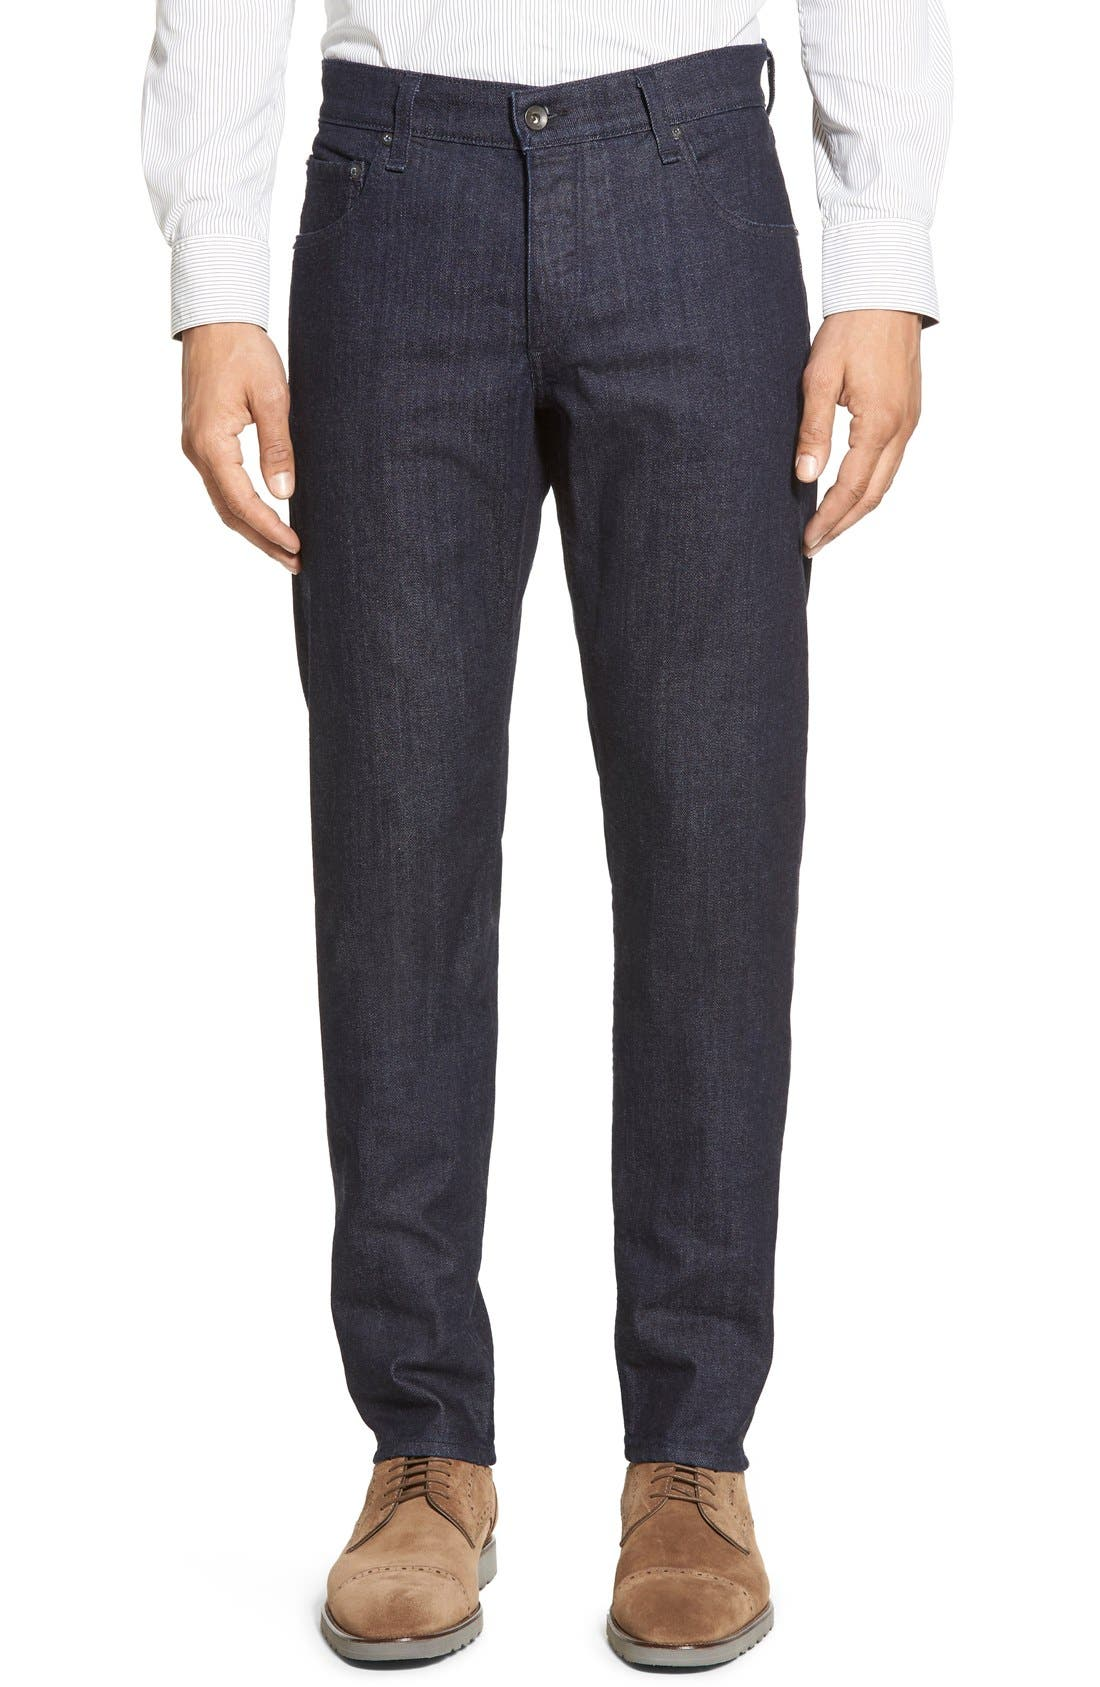 Alternate Image 1 Selected - rag & bone Standard Issue Fit 2 Slim Fit Jeans (Tonal Rinse)